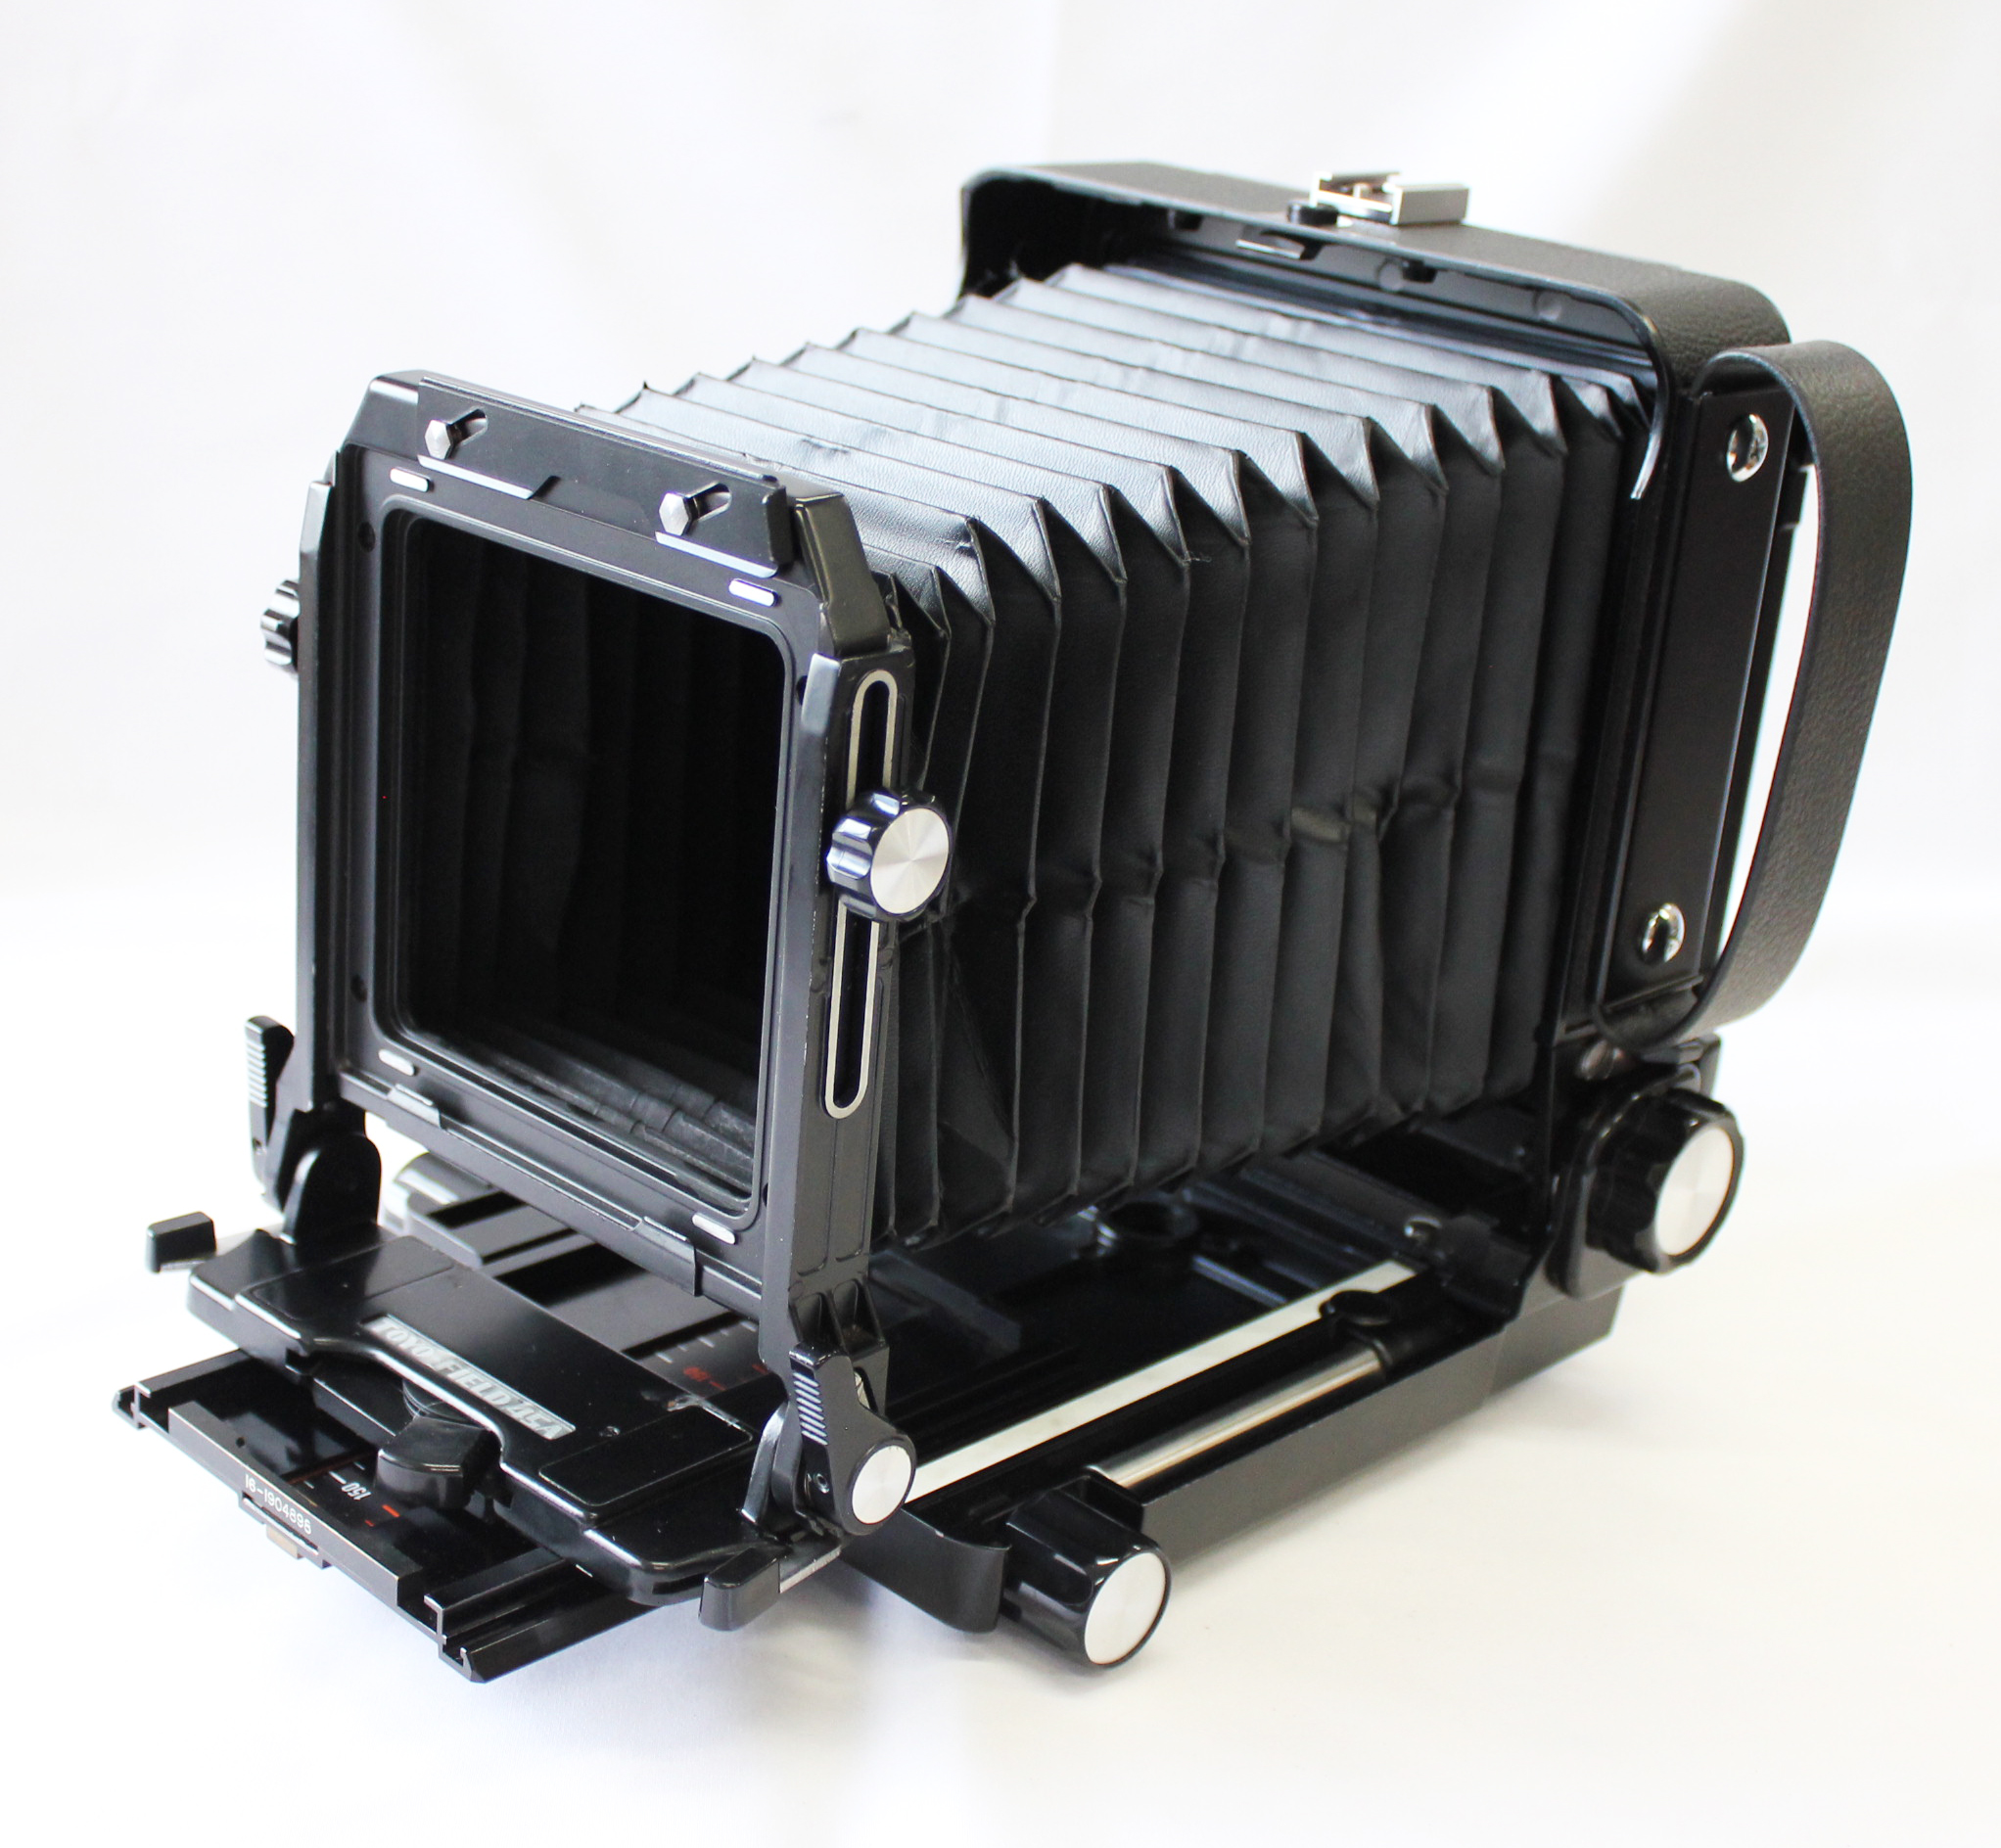 Japan Used Camera Shop | [Excellent+++++] Toyo Field 45A 4x5 Large Format Film Camera from Japan